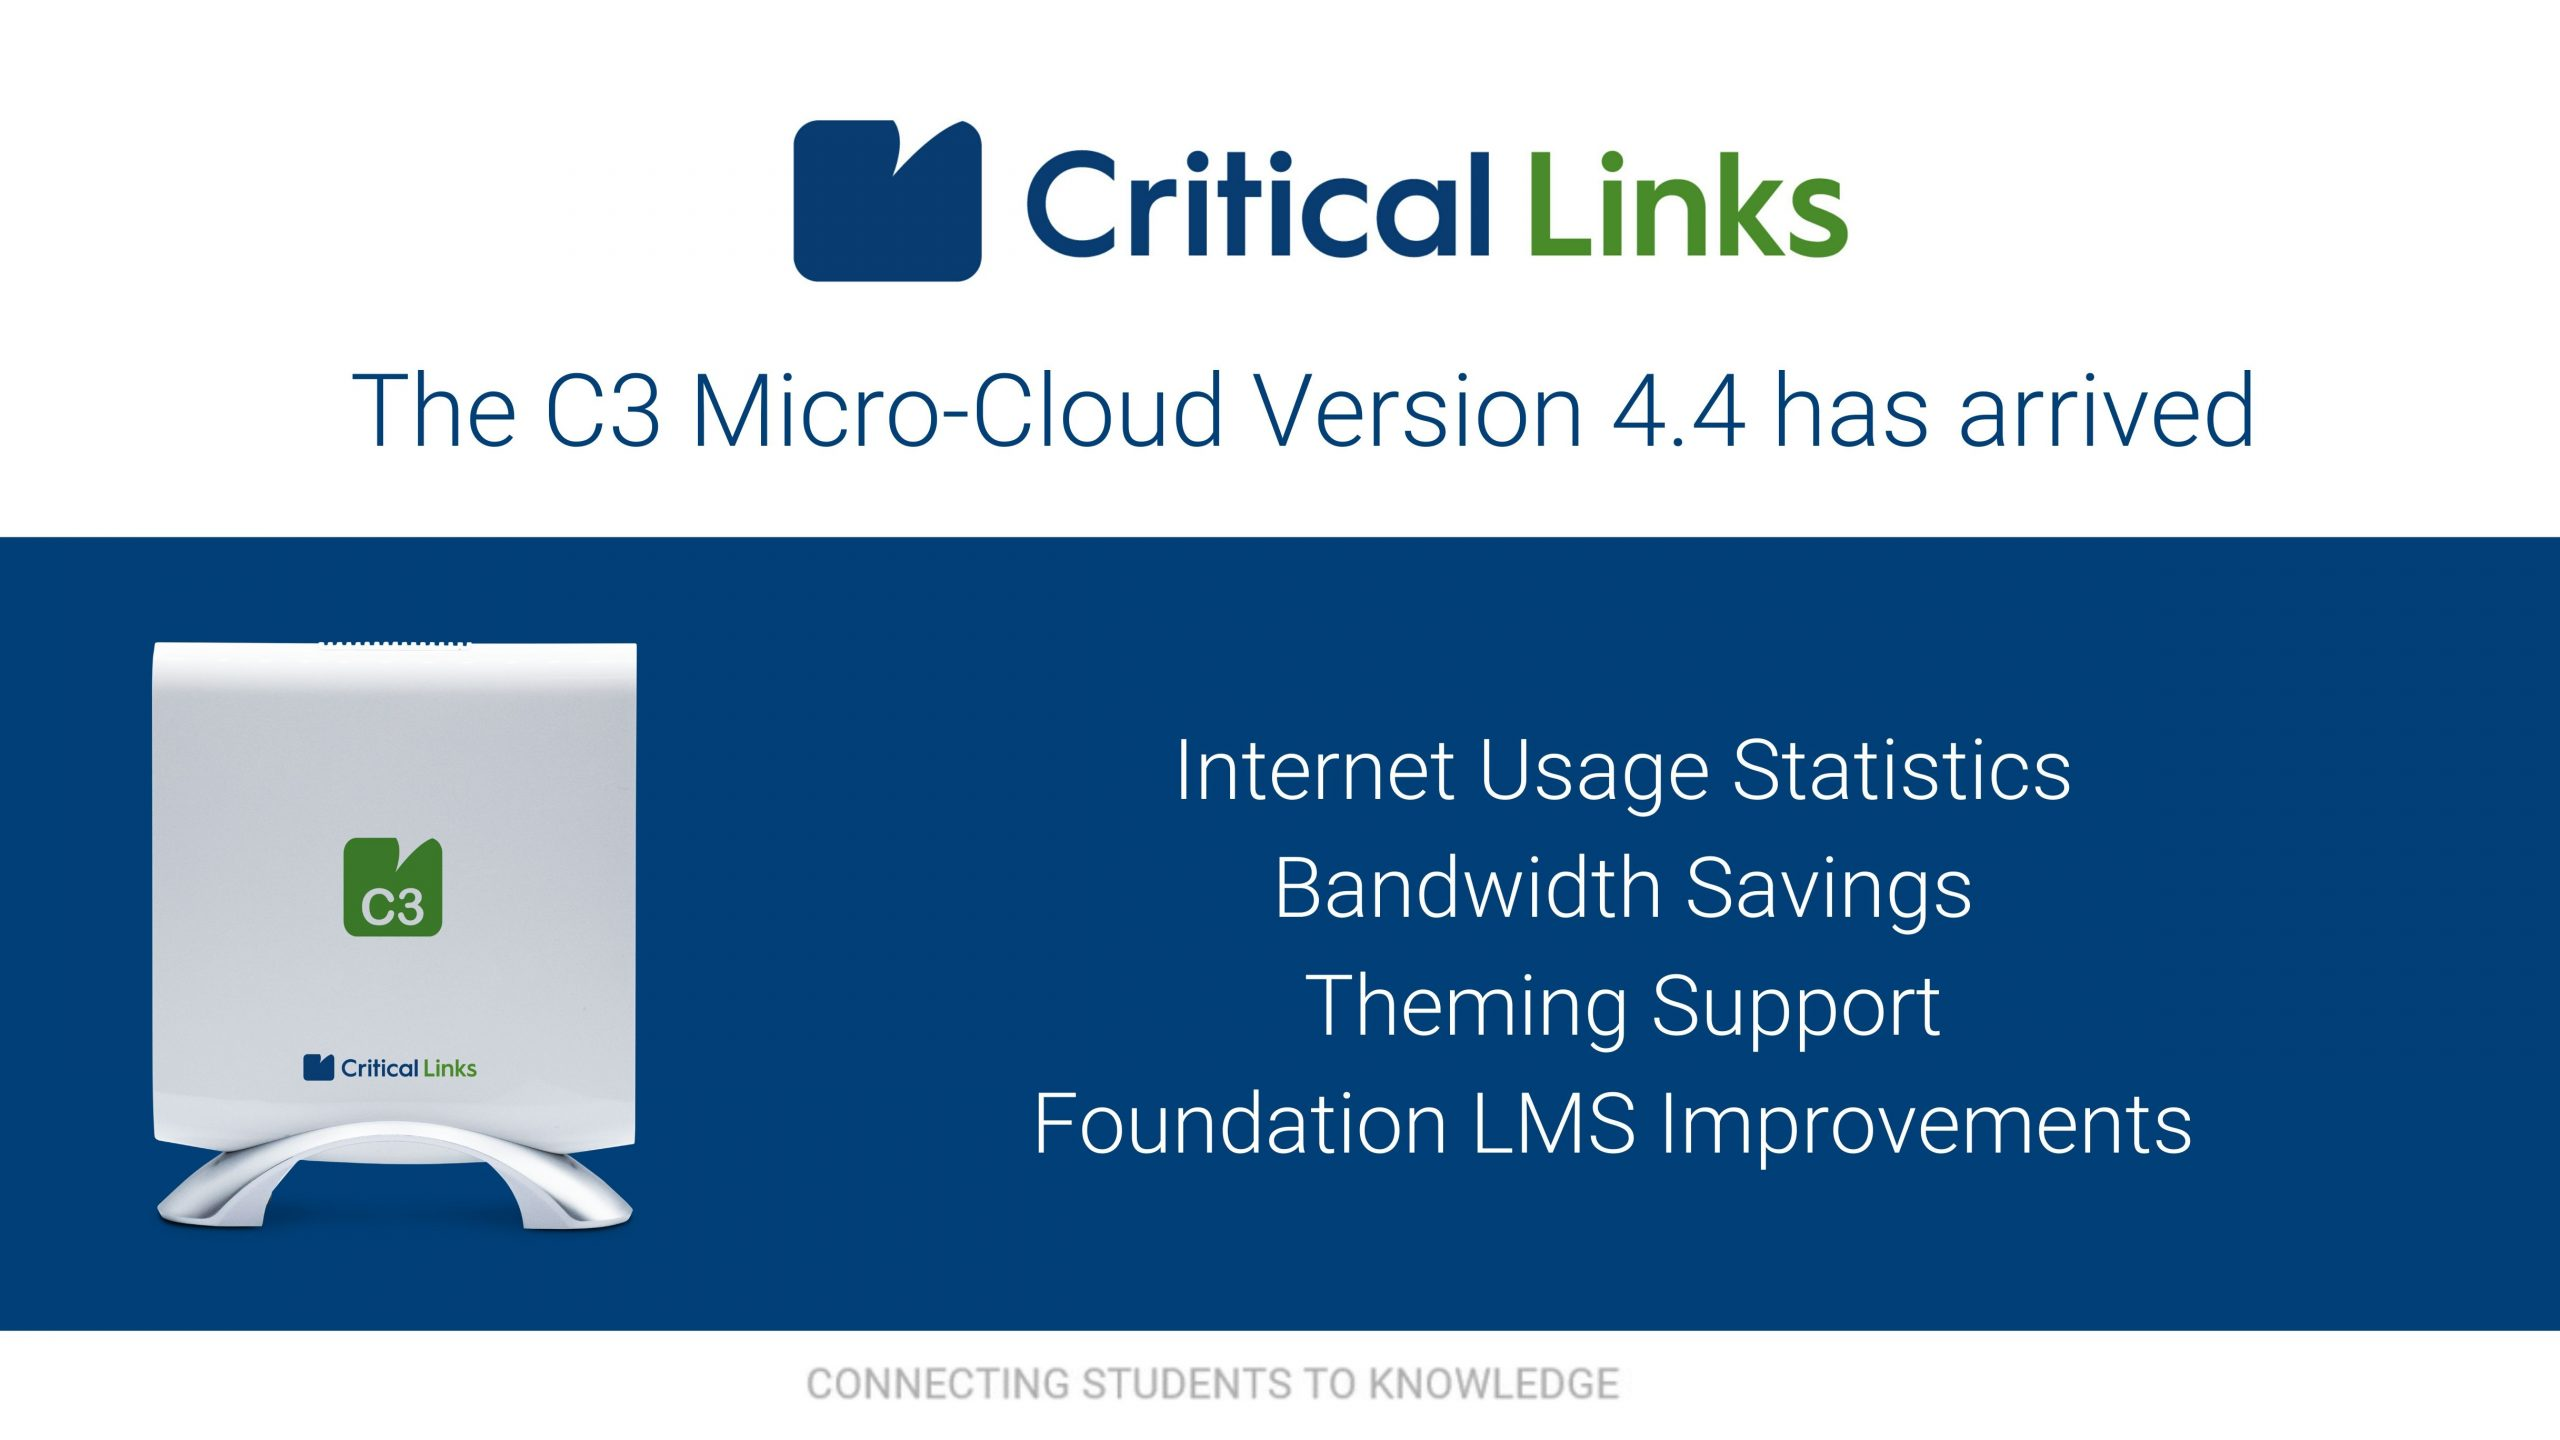 Critical Links Releases C3 Micro-Cloud Version 4.4 to Further Drive Global e-Learning Initiatives